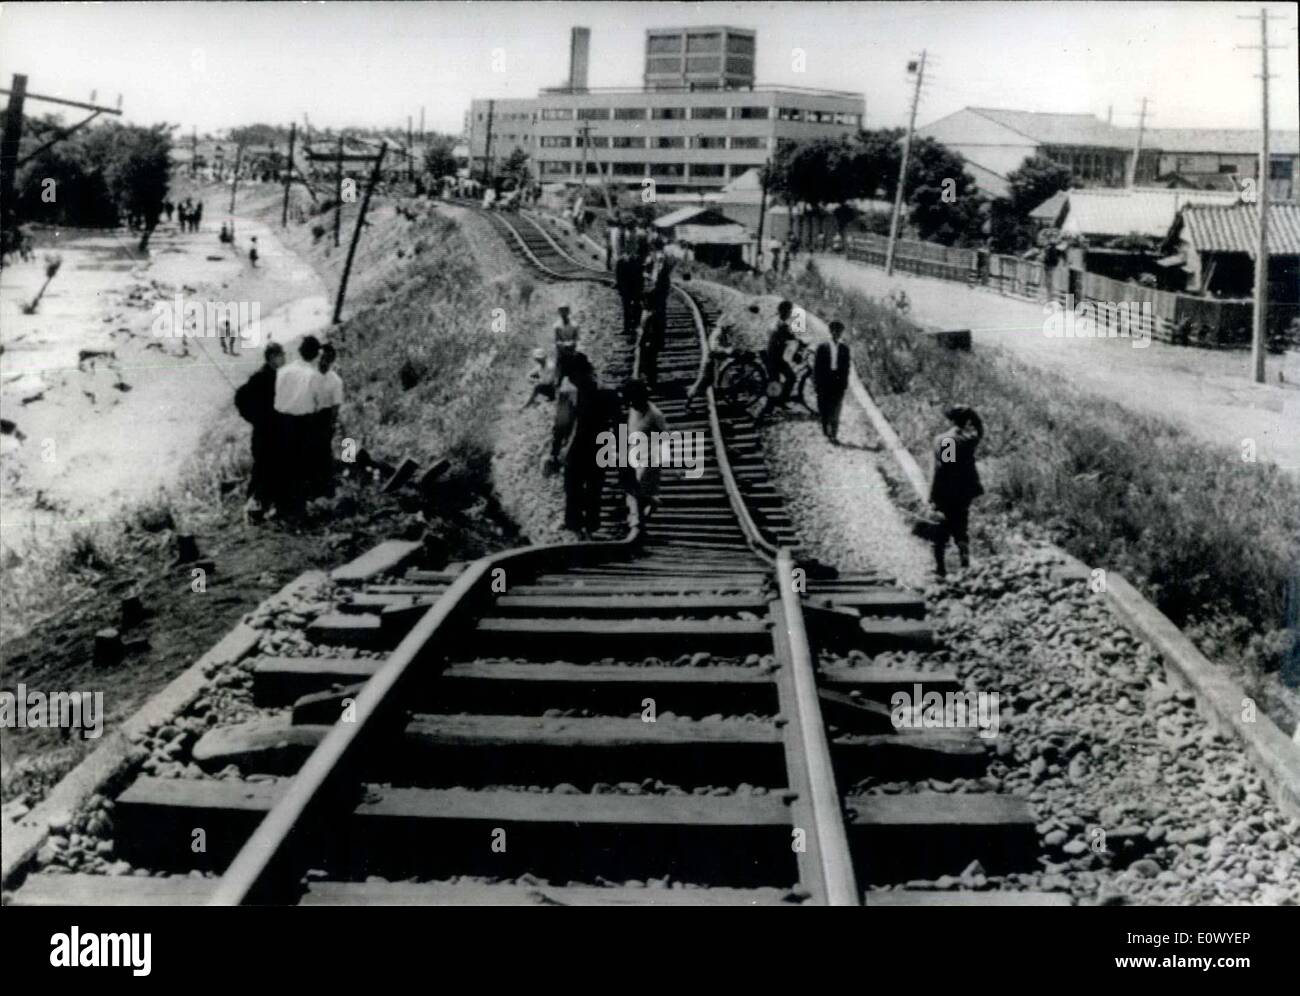 Jun. 16, 1964 - Earthquake disaster in Niigata Japan: The city of Niigata is a blazing shambles after the sever earthquake which took place at 1.02 PM 6/16/64, isolatig it from the rest of Japan as railway lines buckled, and the runway of the airport partly disappeared there is no water, electricity of sewerage remaining and thousand are homeless. The port of Niigata, one of the principal oil refining cities, suffered a double catastrophy as oil tanks burst spreading blazing oil over hundreds of houses nearby, destroying 291 of them - Stock Image